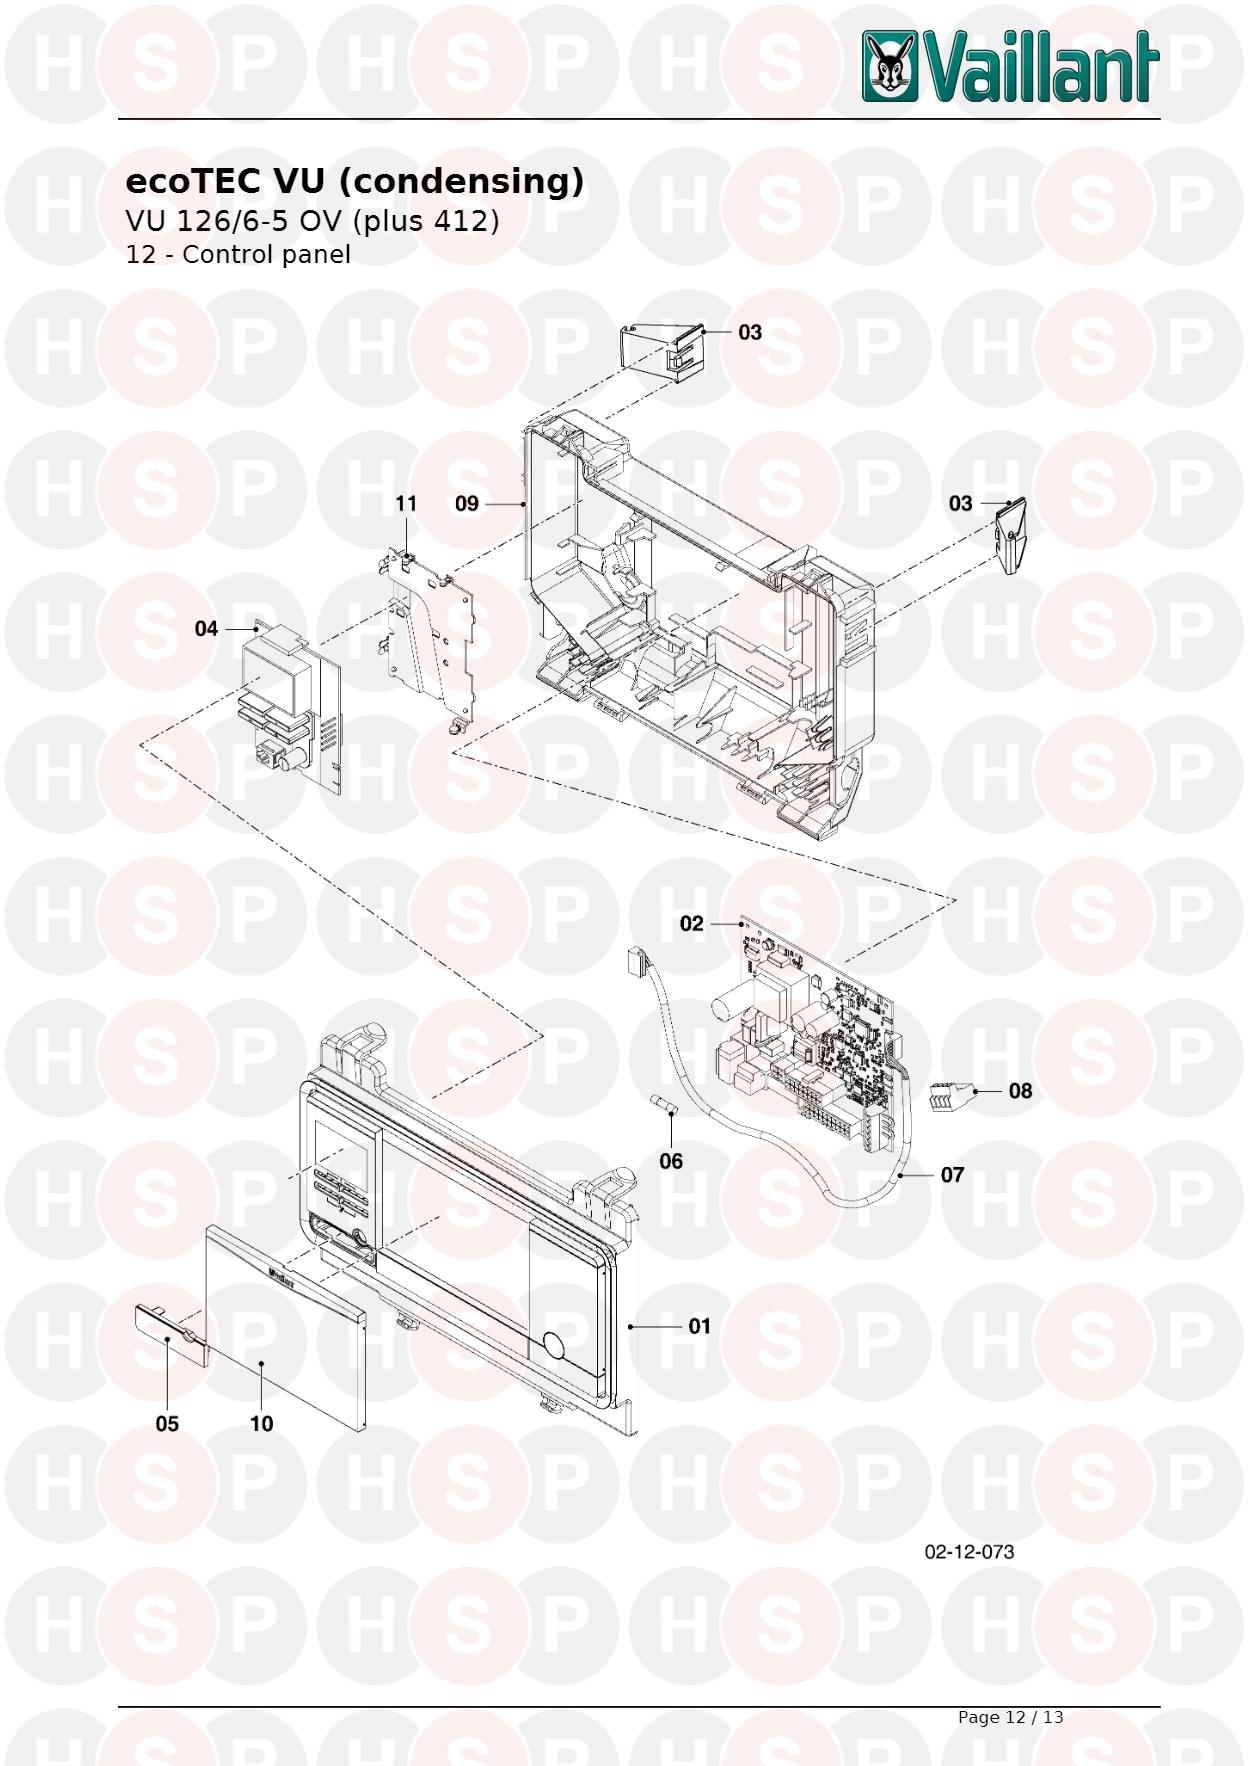 Vaillant ecotec plus 412 vu 1266 5 ov 2015 2016 appliance diagram click the diagram to open it on a new page asfbconference2016 Images